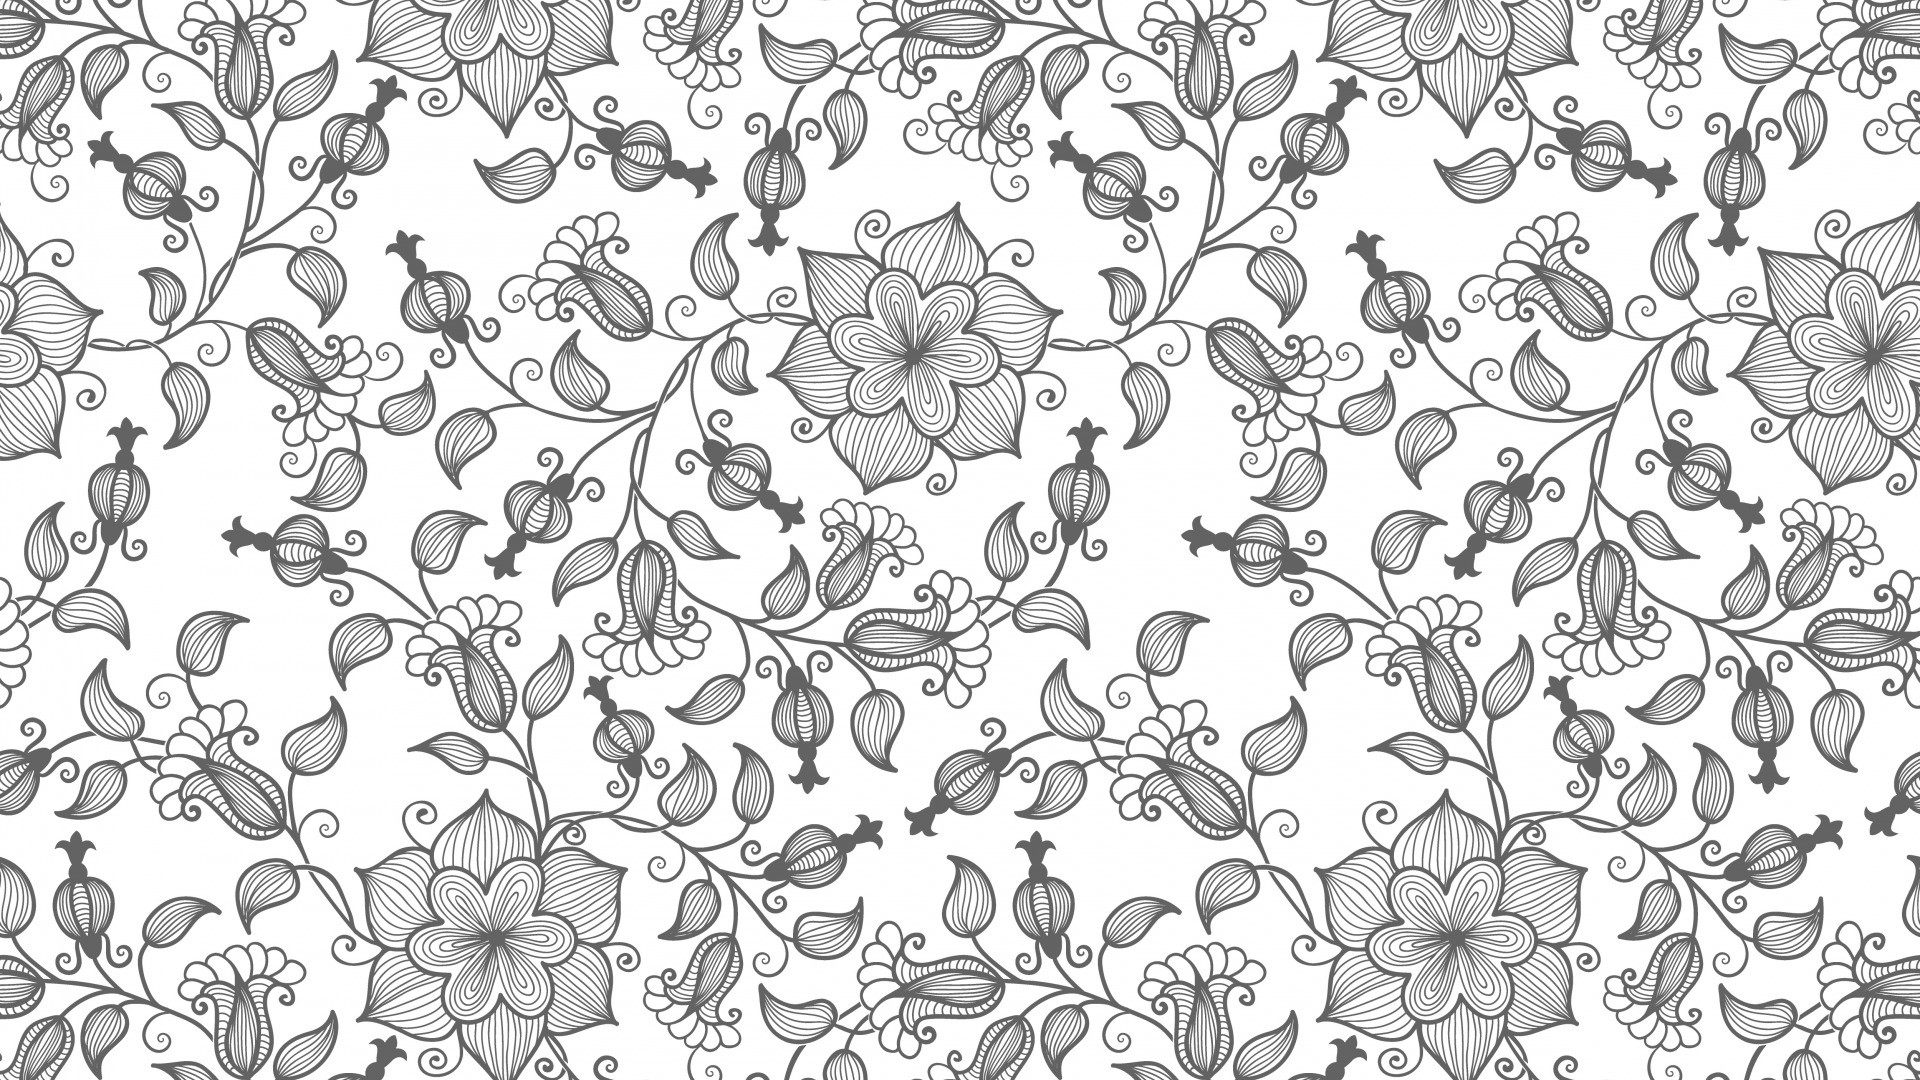 Black And White Floral hd wallpaper download